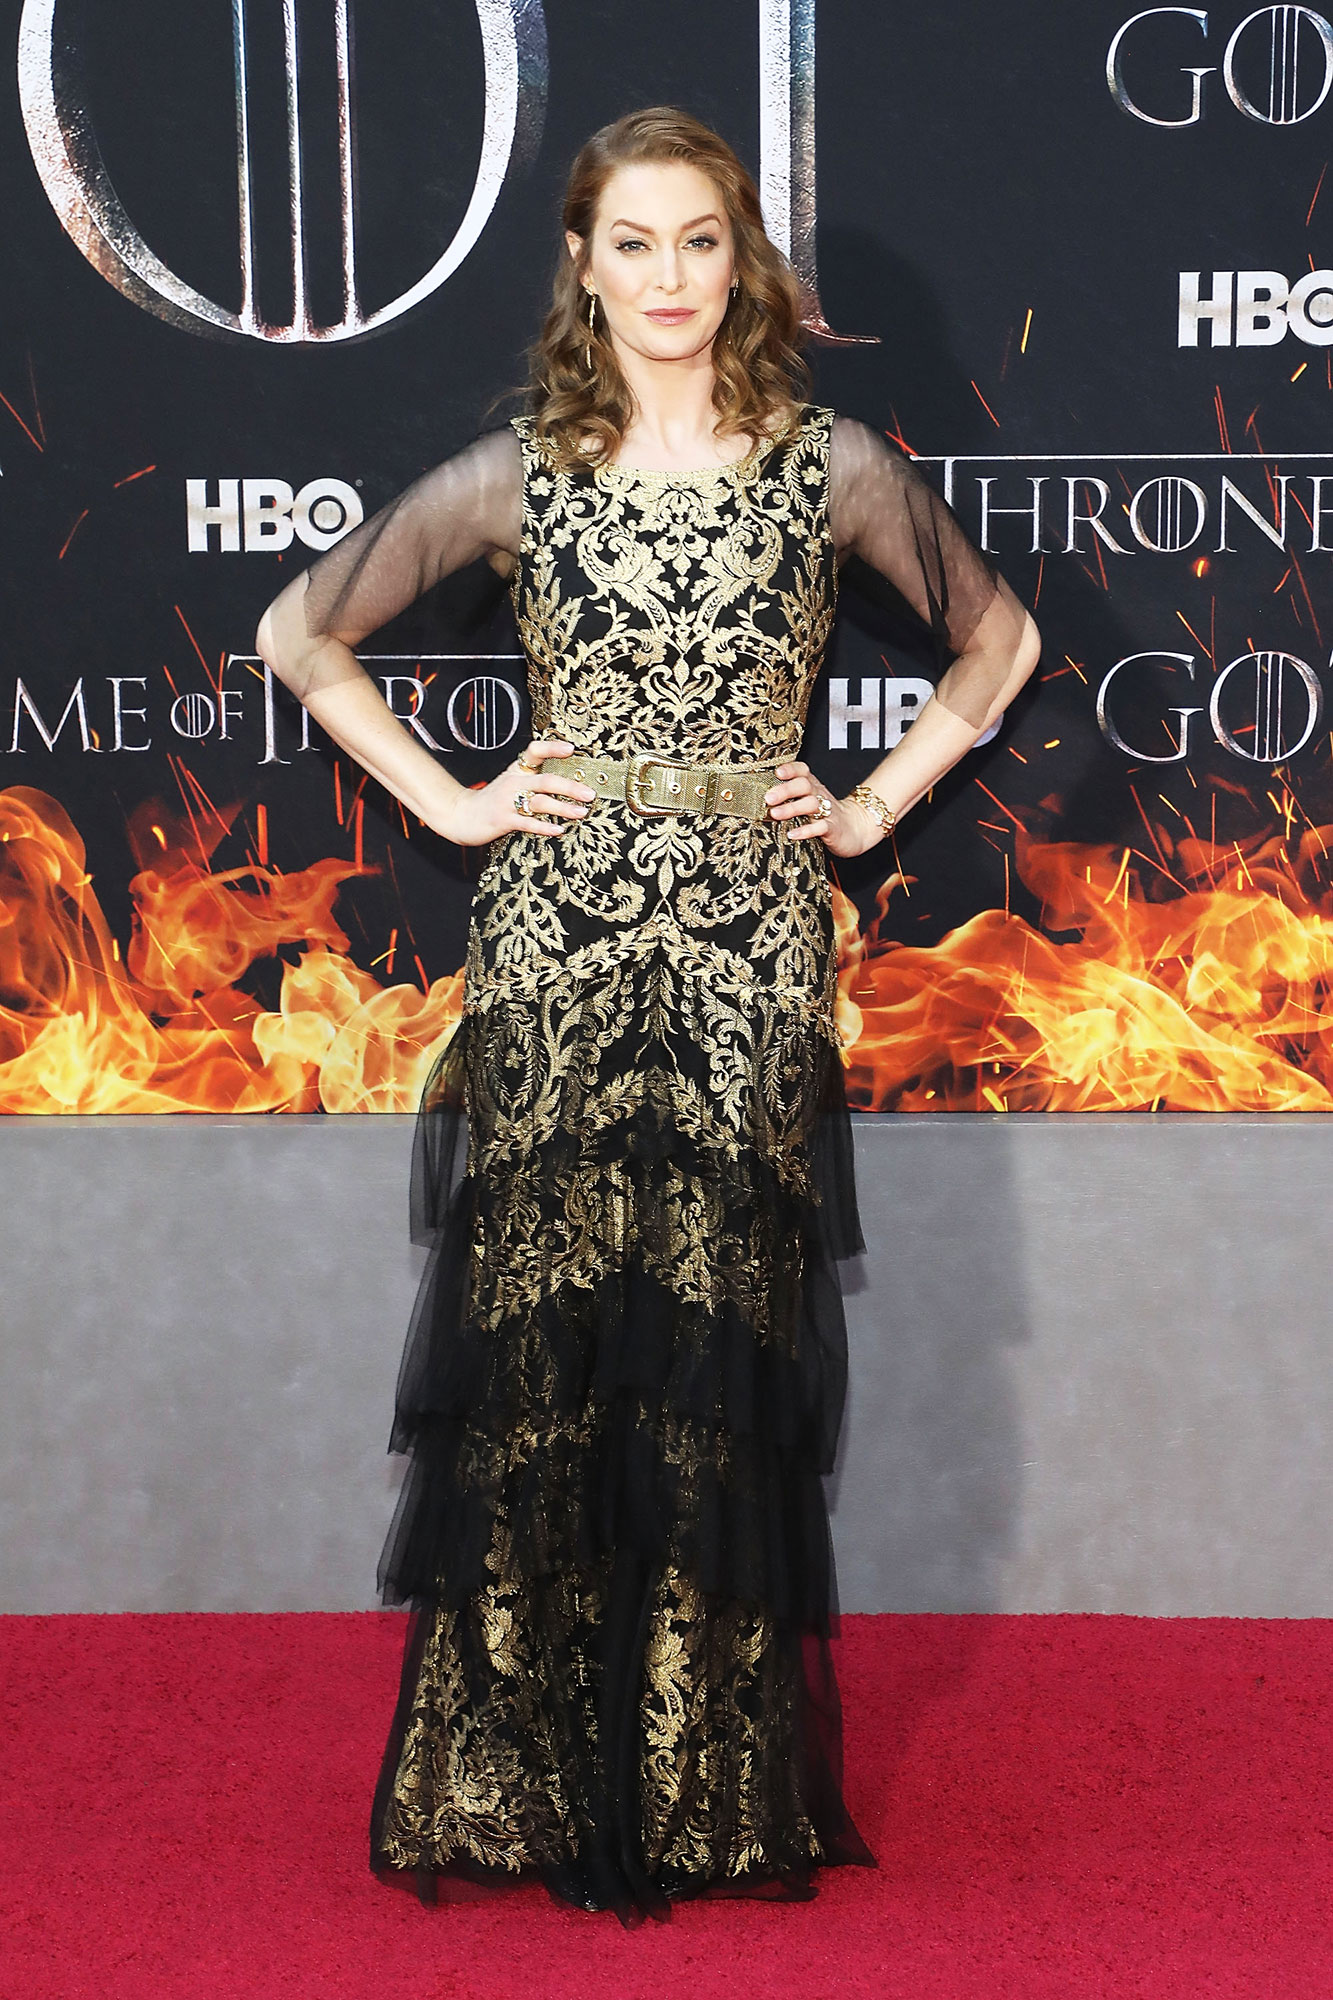 Esme Bianco game of thrones - Wearing an ornate black and gold belted gown with tulle sleeves.